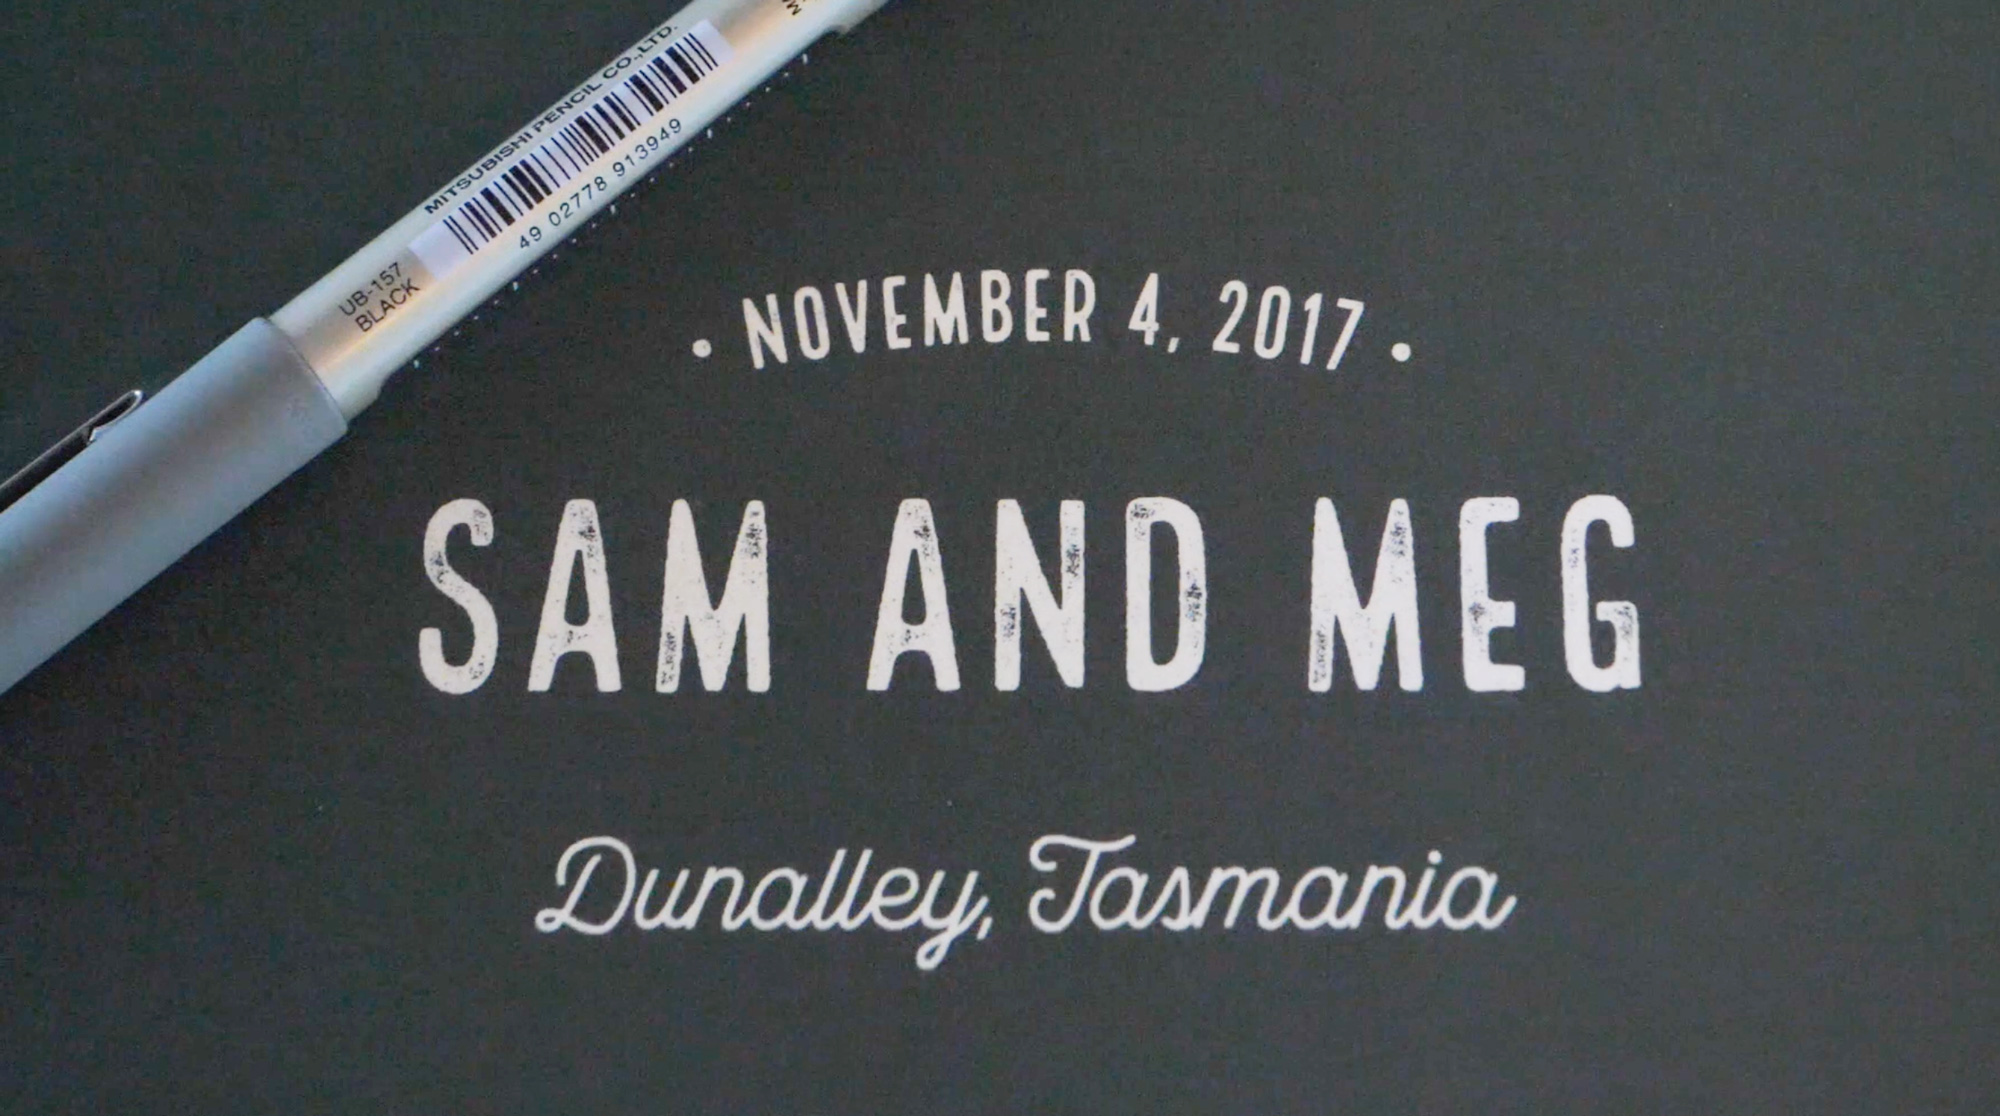 The cover of their wedding book that says Sam and Meg